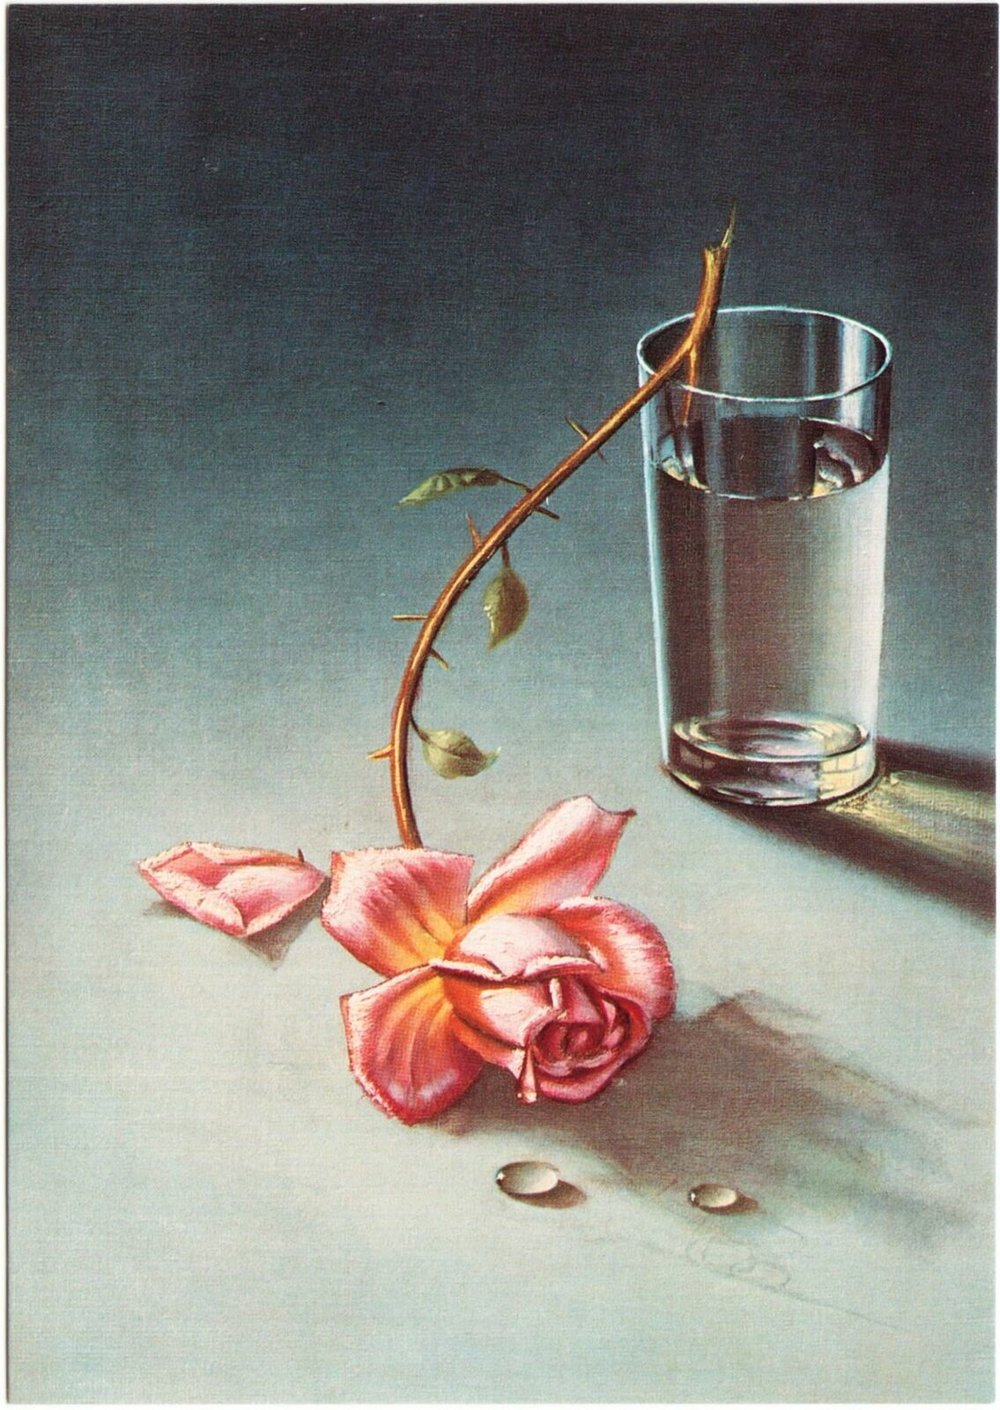 Vladimir Tretchikoff,  Weeping Rose  (1949)